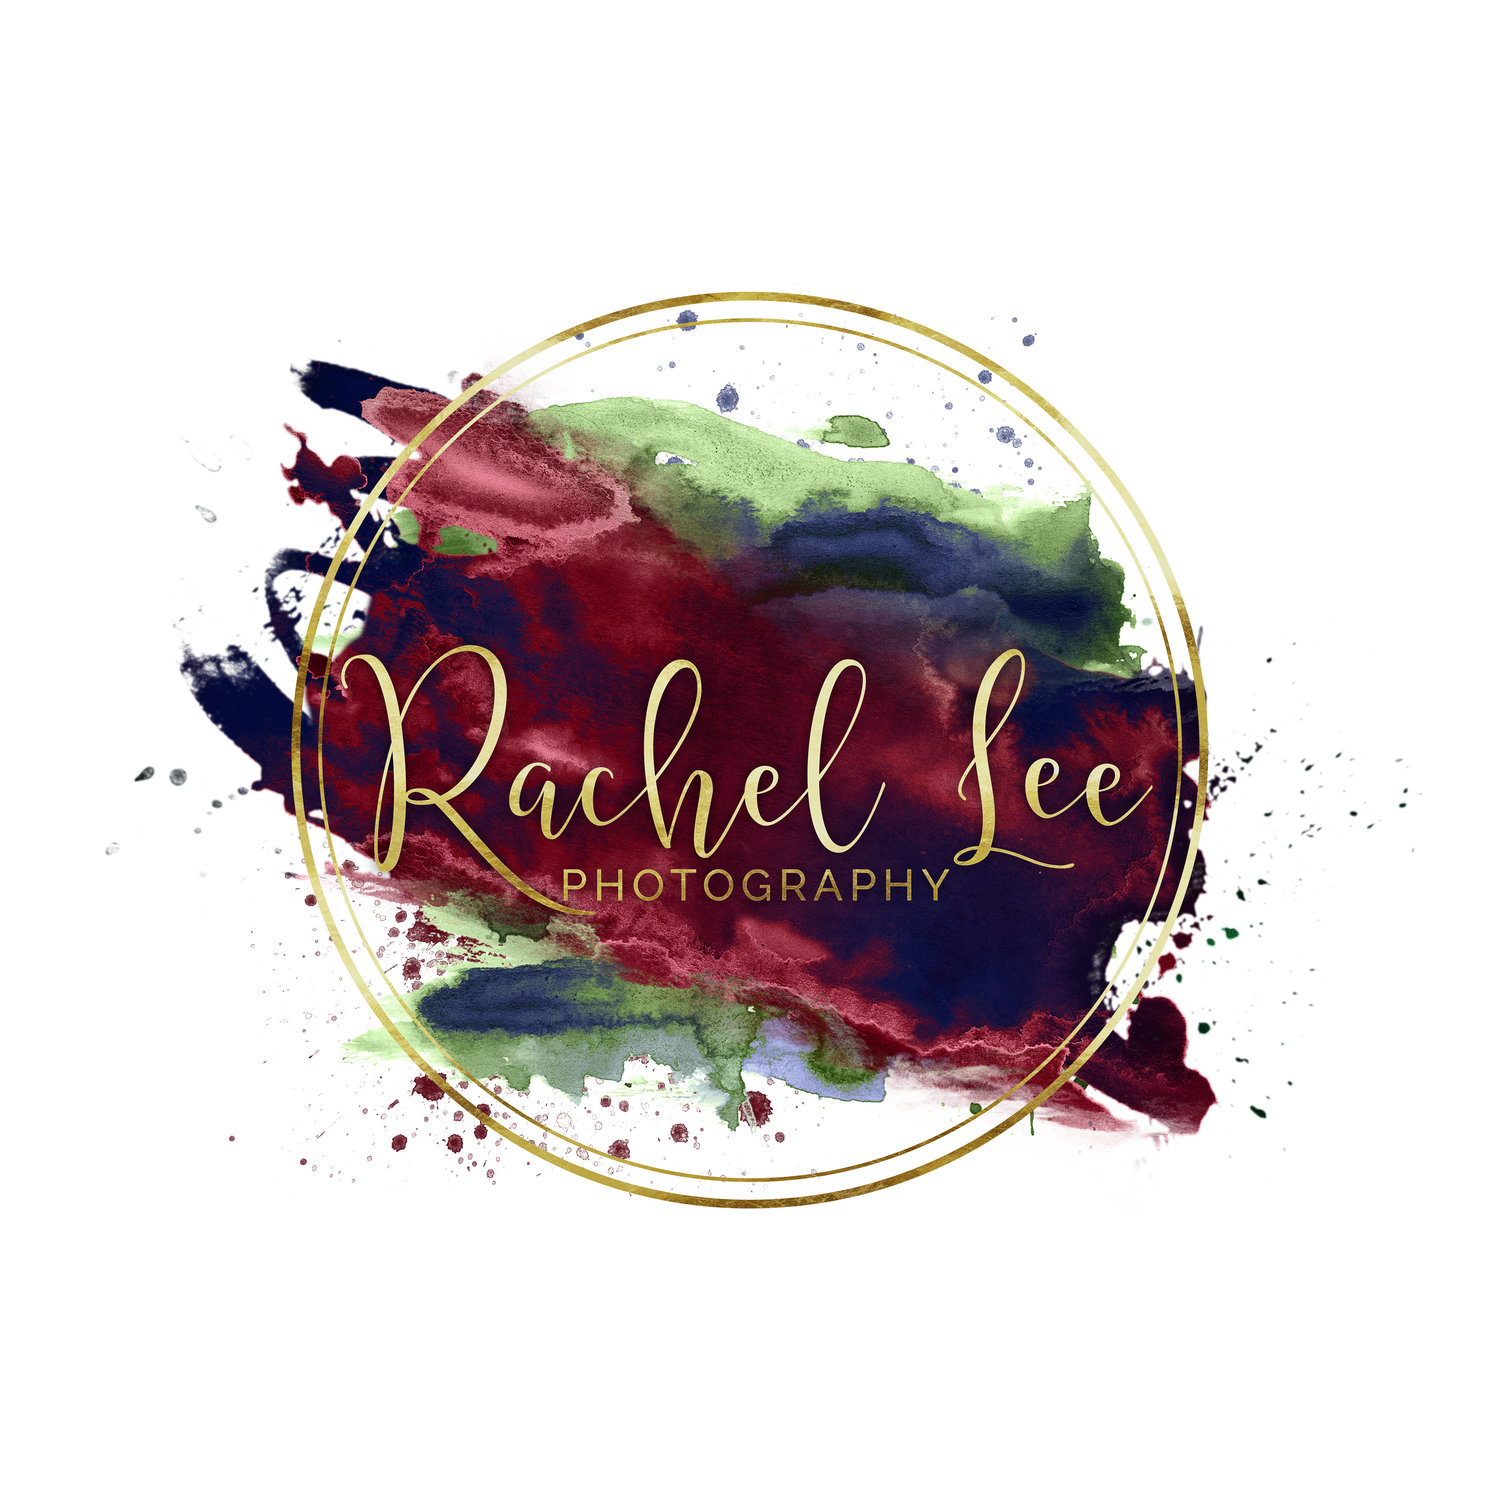 Rachel Lee Photography